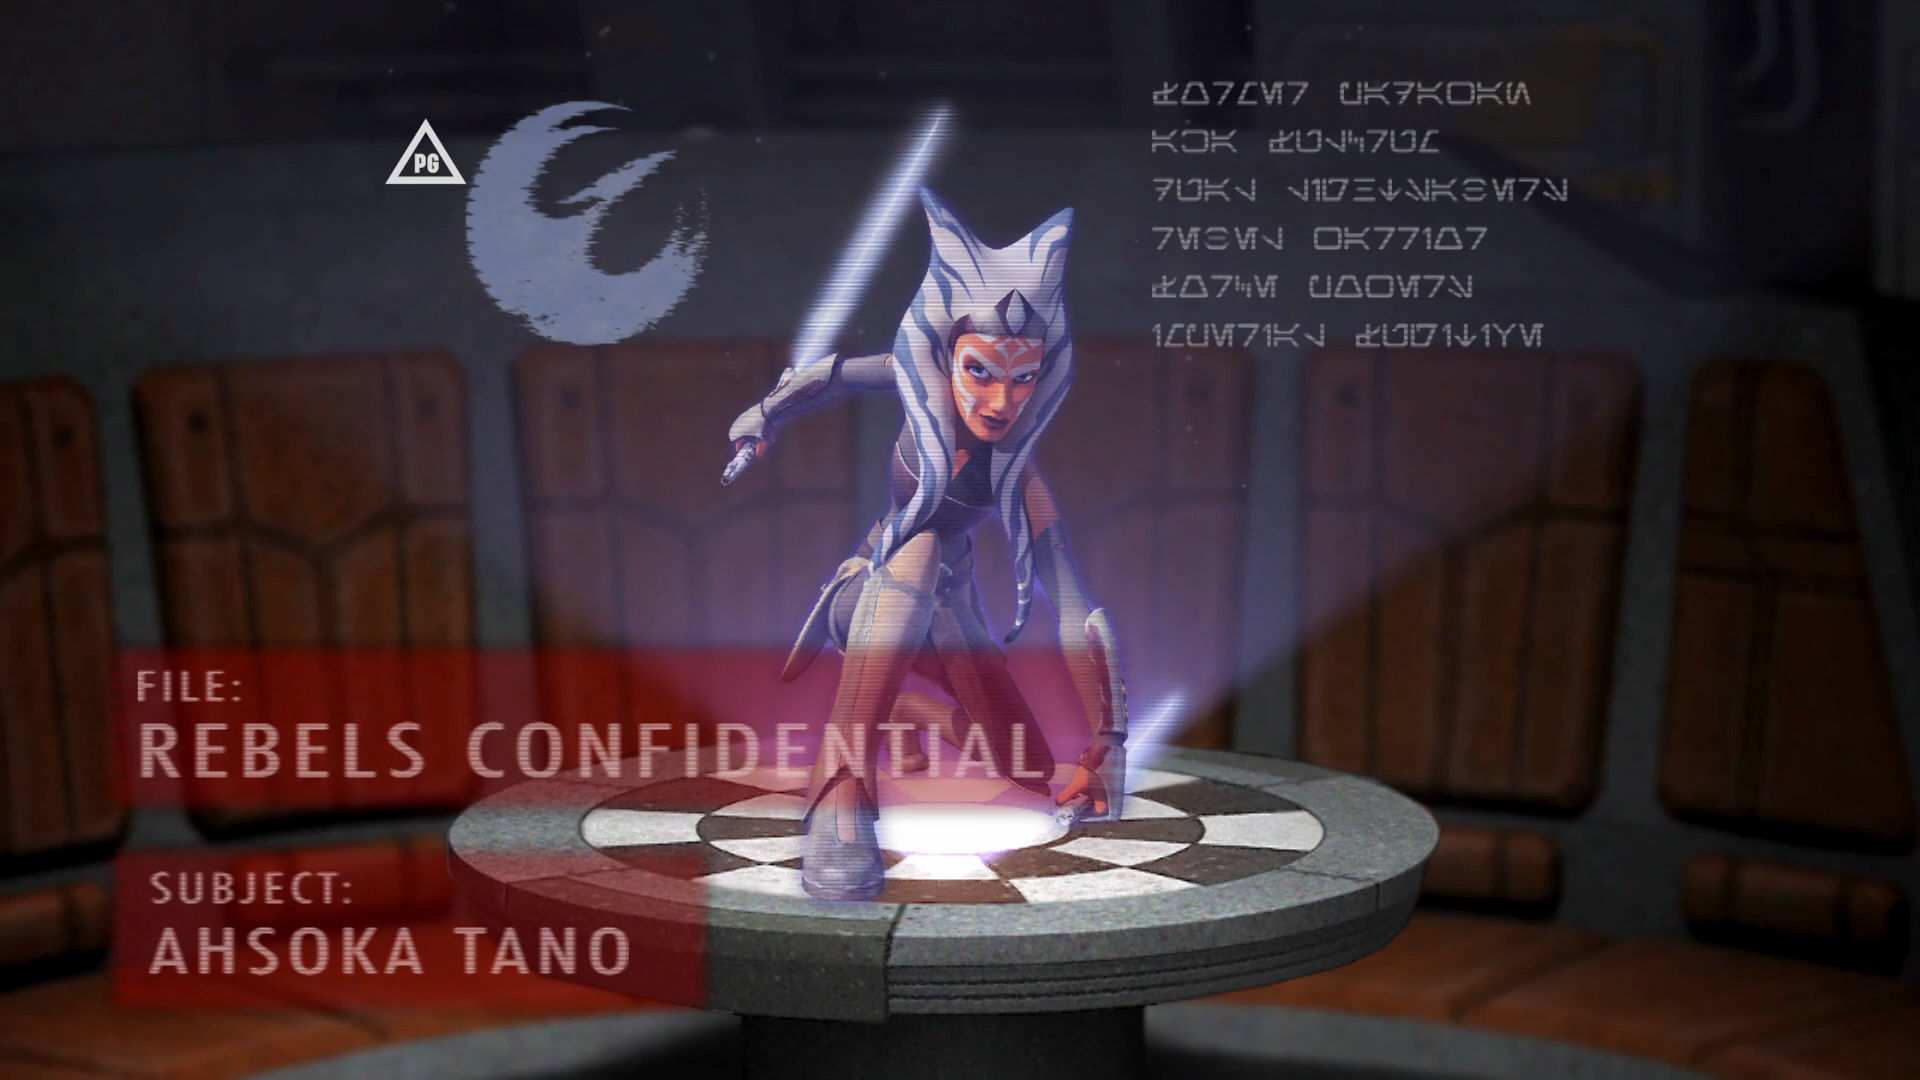 Rebels Confidential: Ahsoka Tano